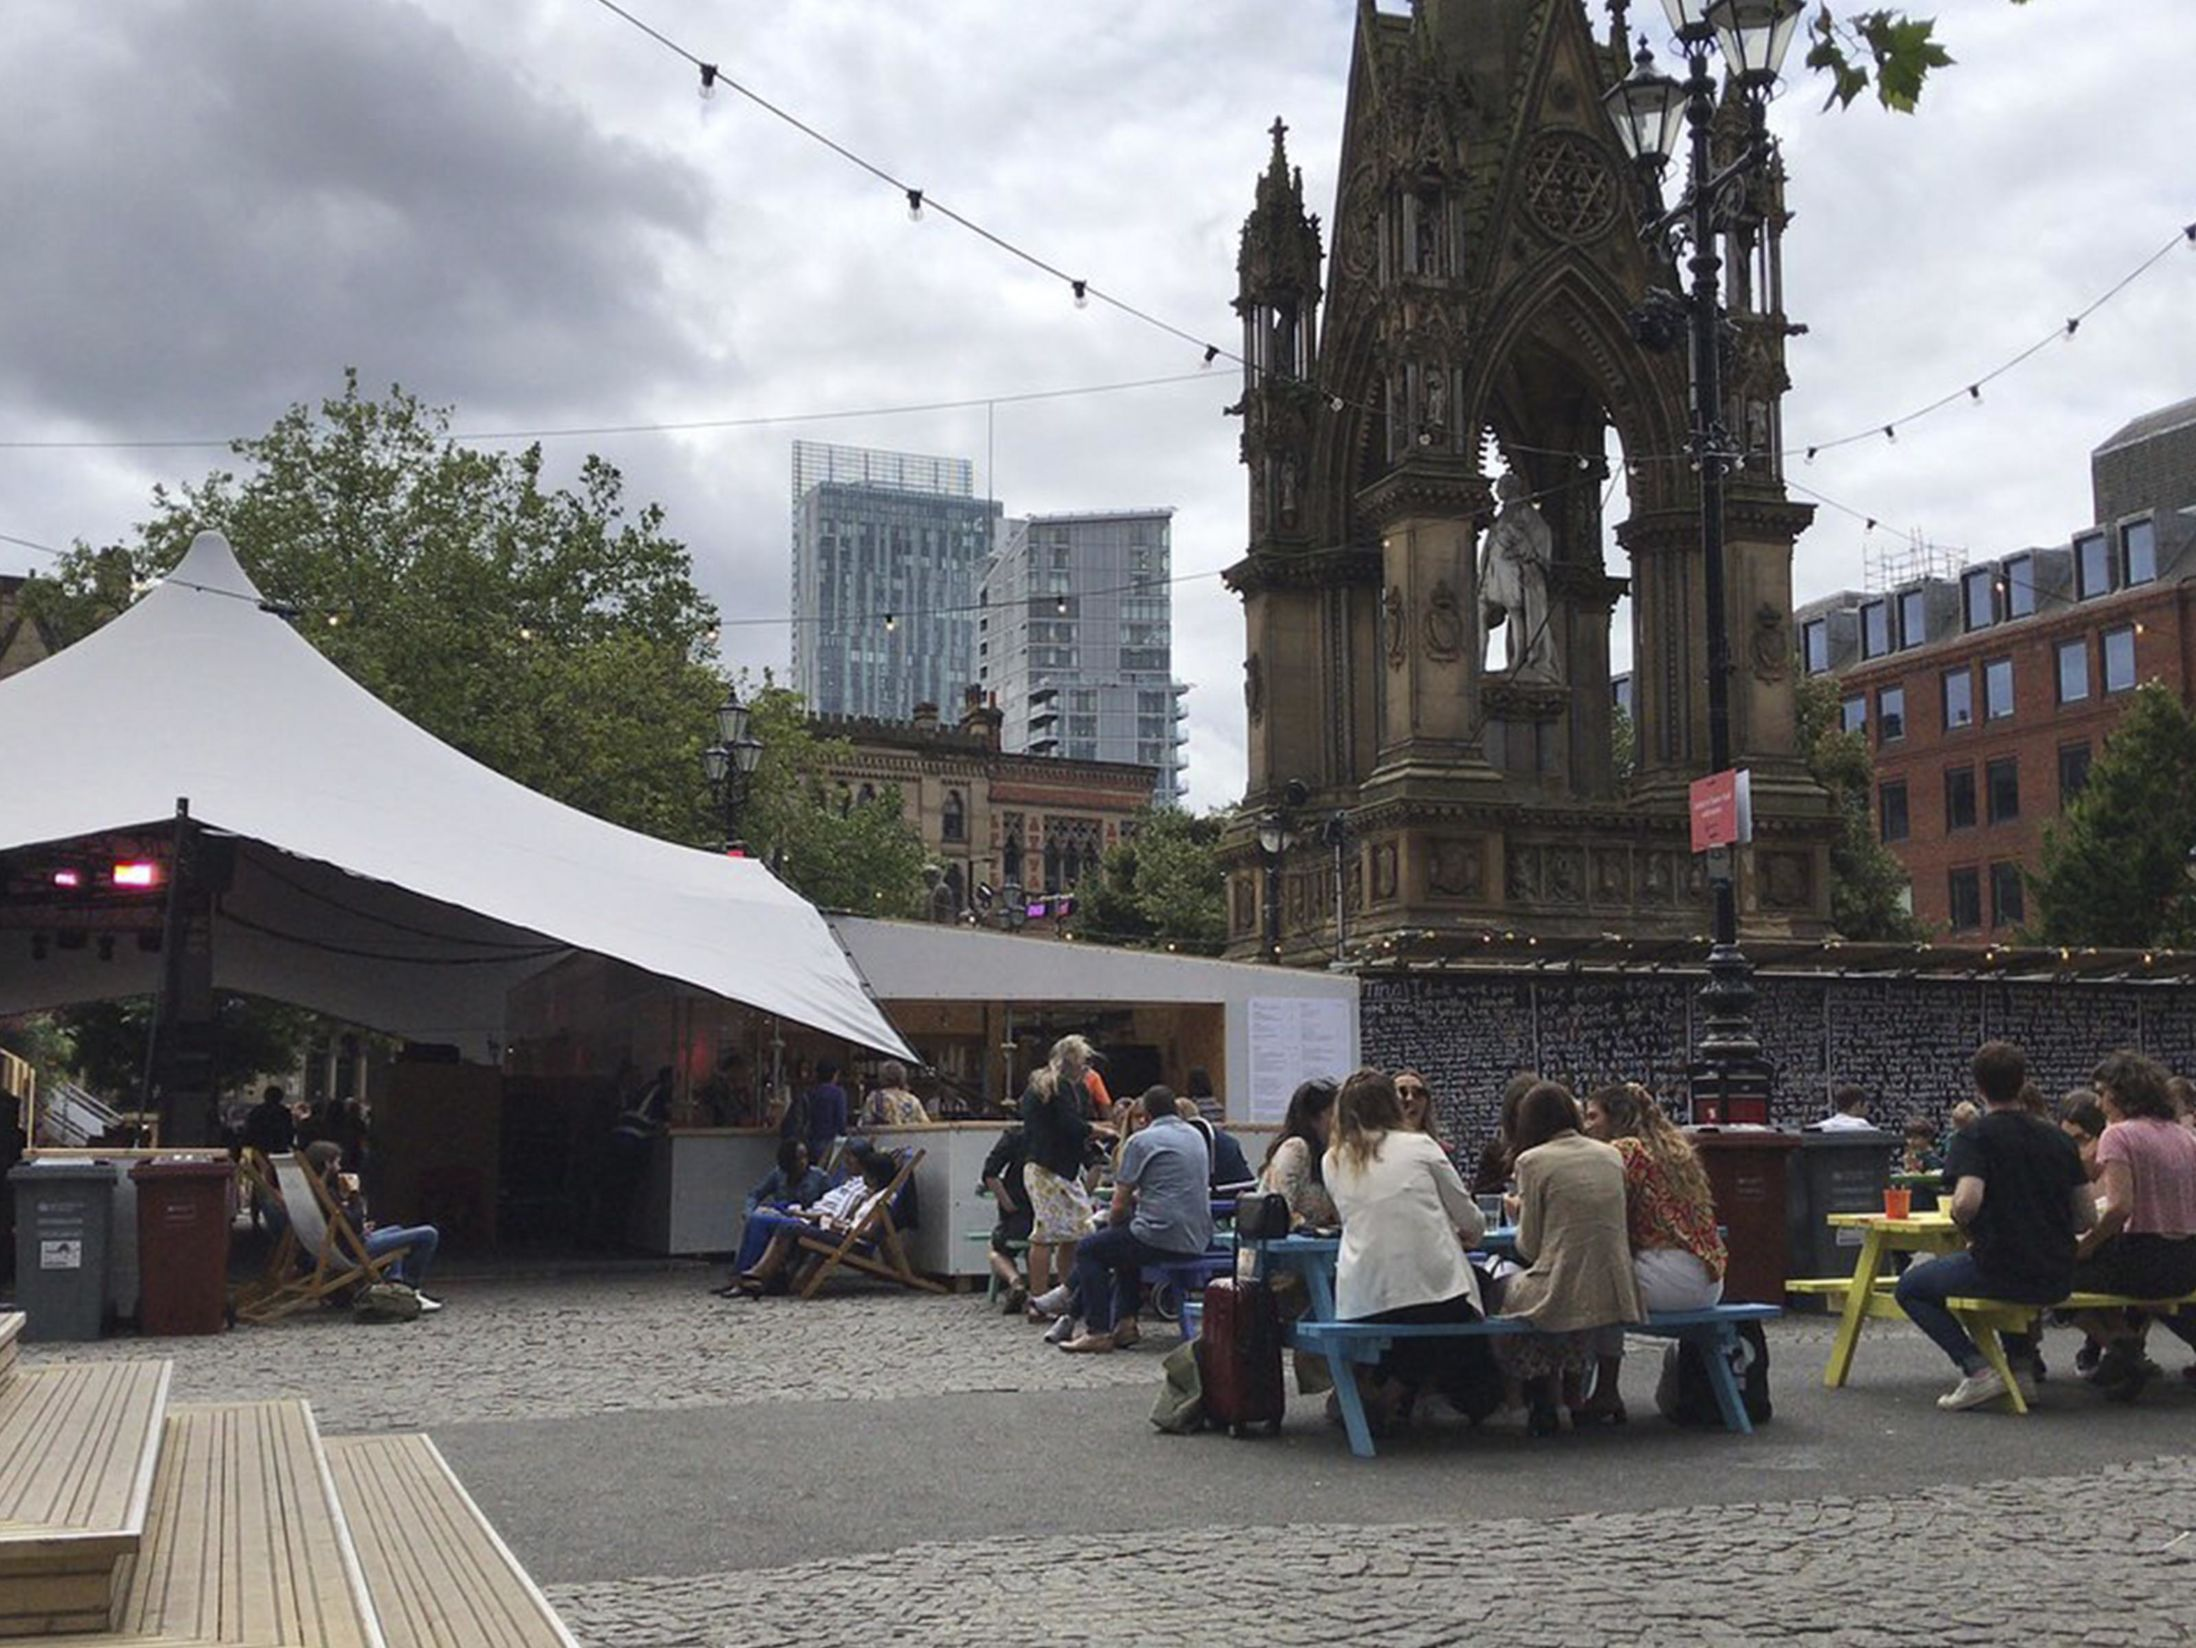 Manchester Events to Know About - Manchester International Festival